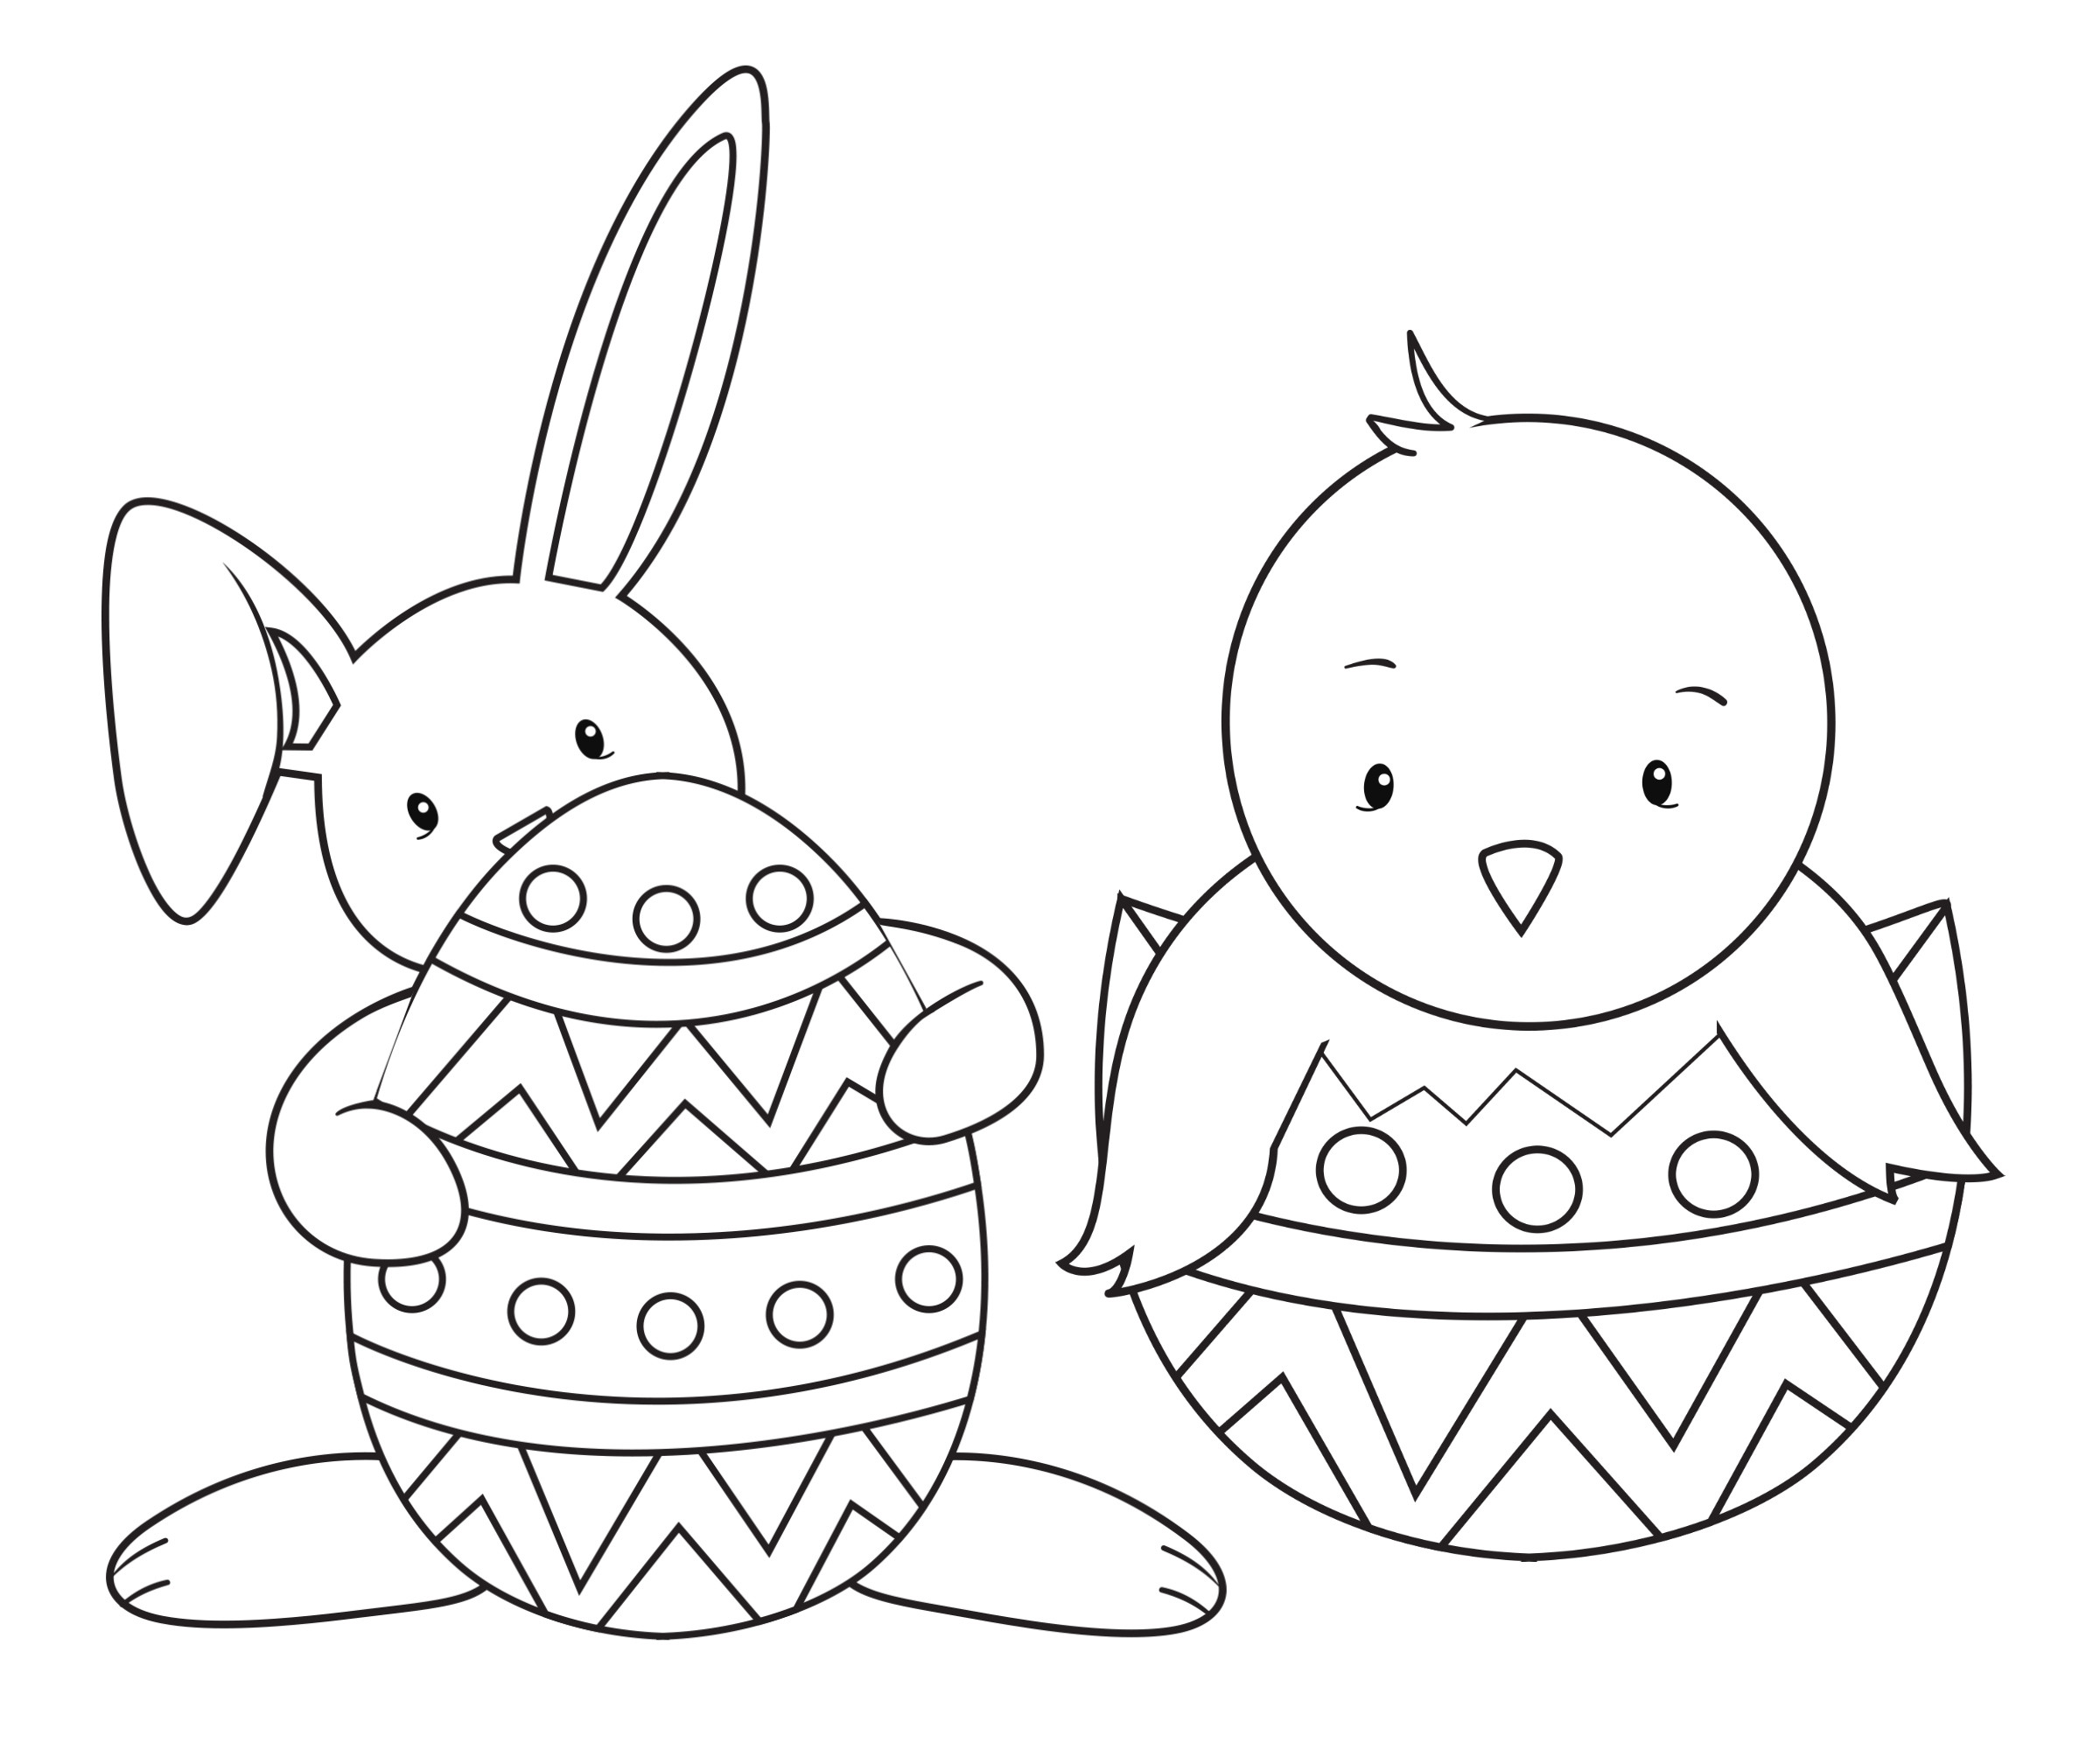 Easter Bunny Coloring Pages For Toddlers  15 Easter Colouring In Pages The Organised Housewife